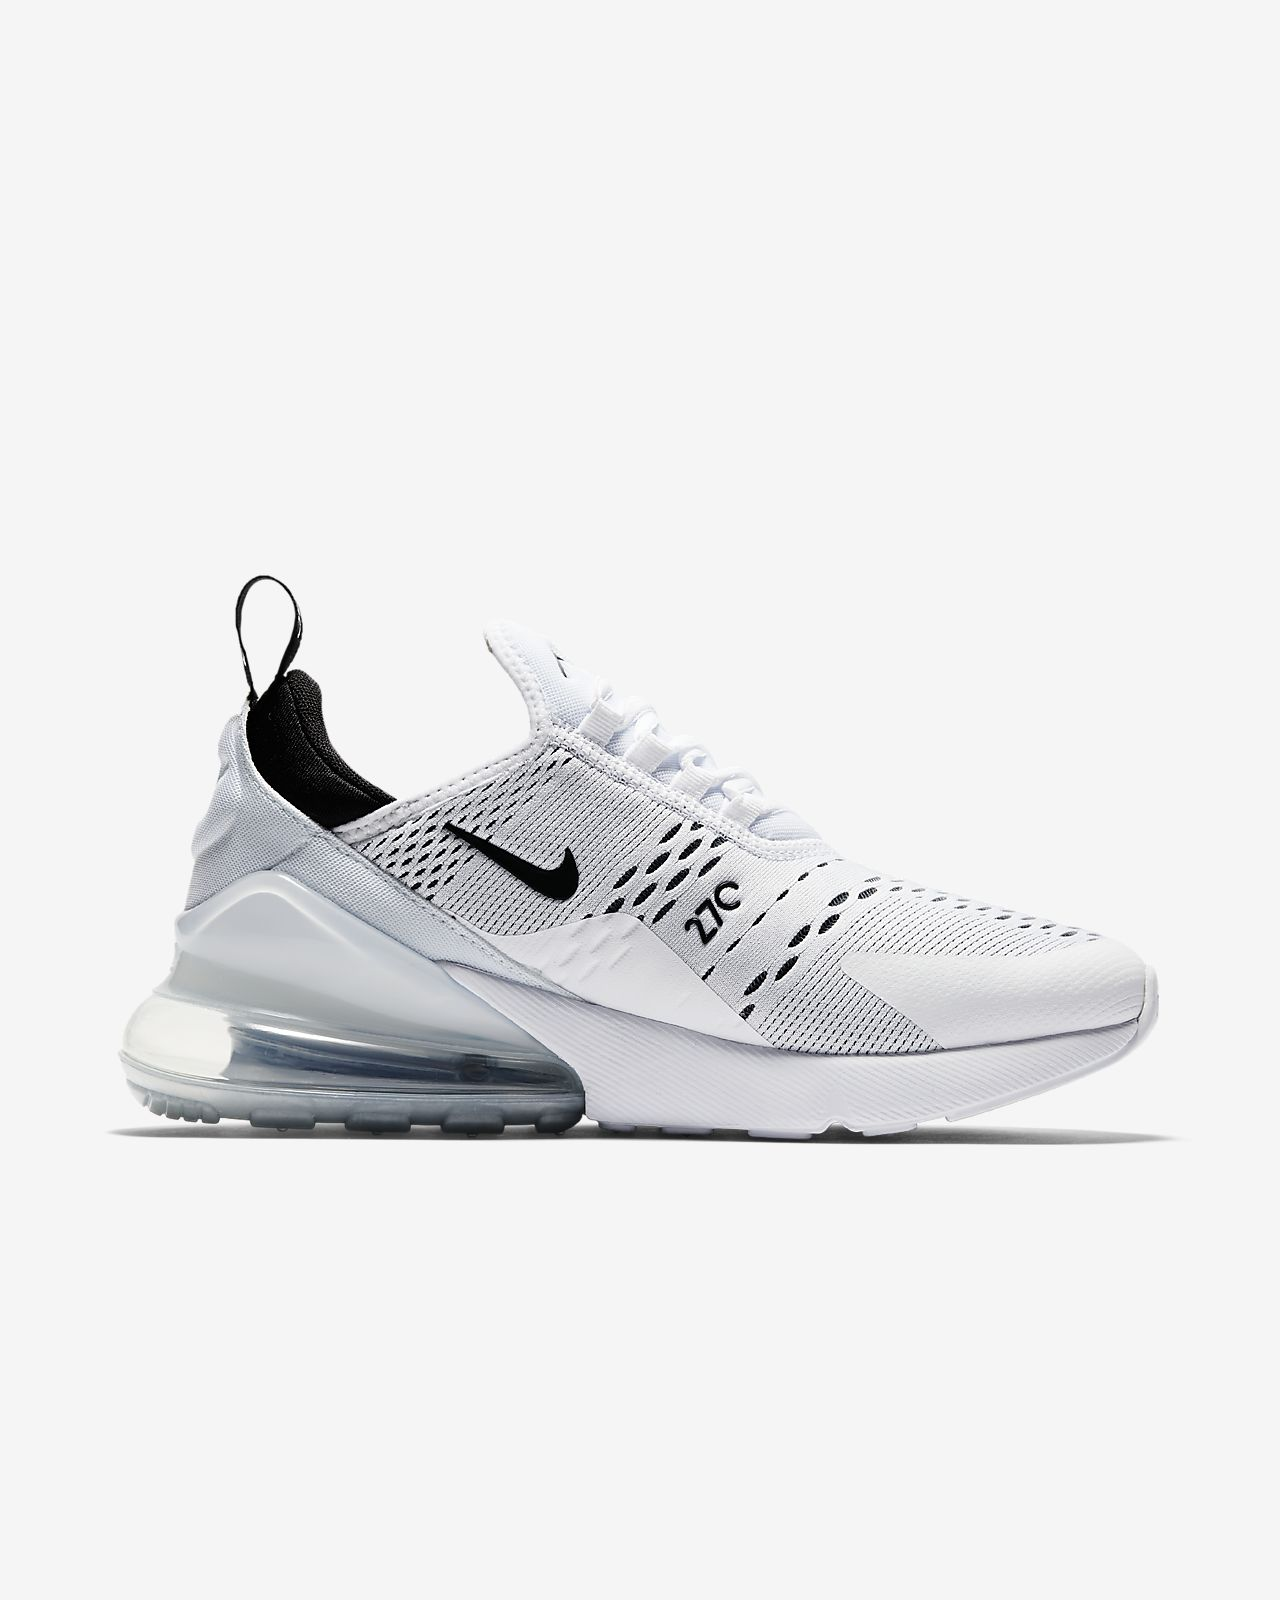 pretty nice fashion style best quality Chaussure Nike Air Max 270 pour Femme